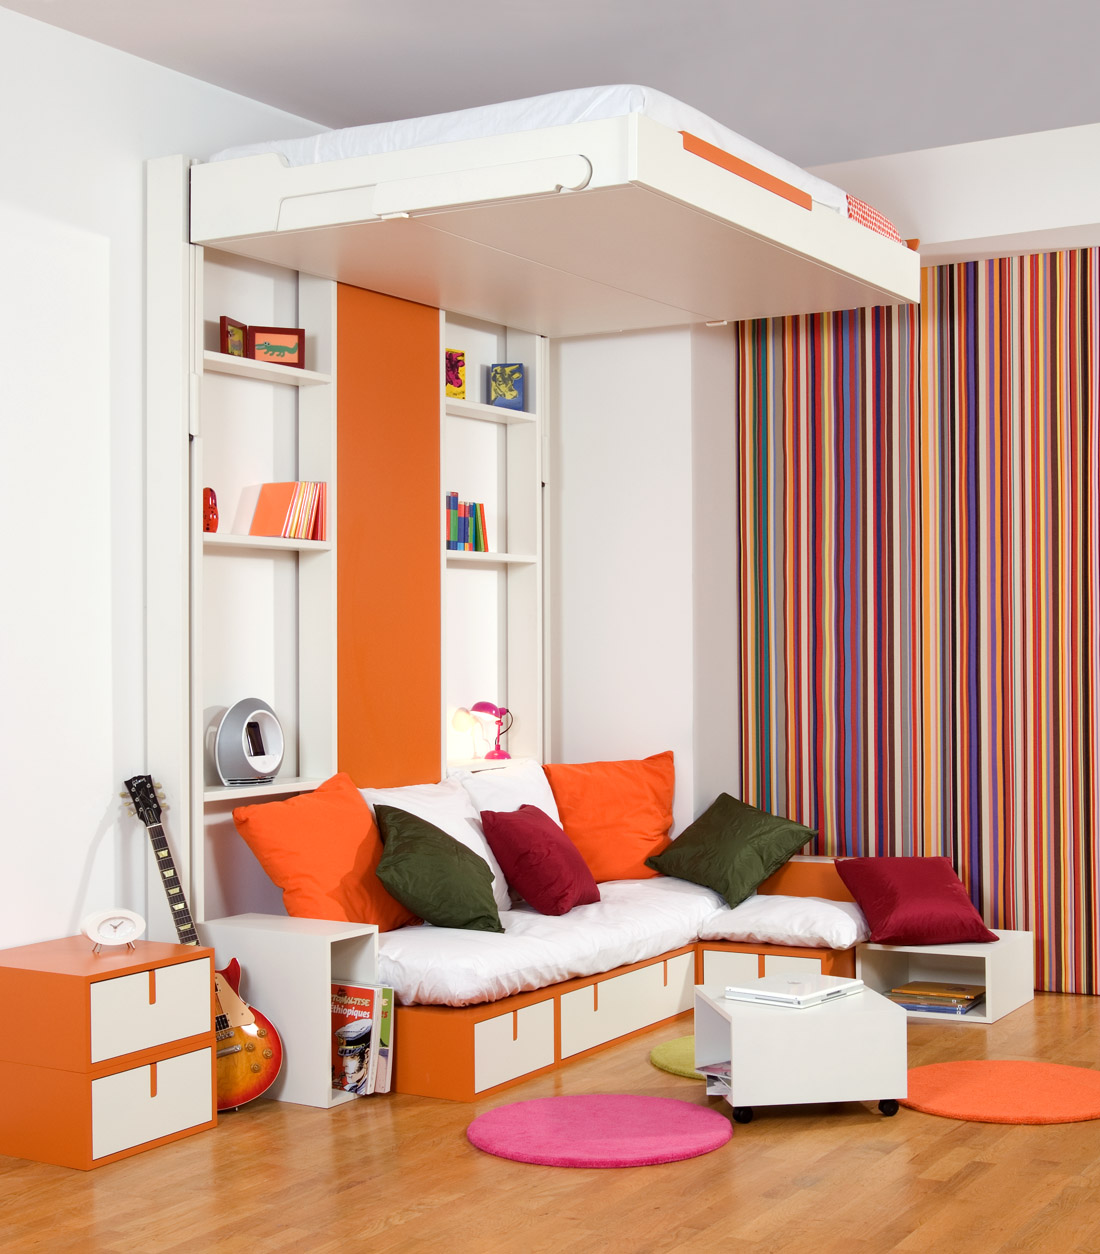 10 great space-saving beds - Living in a shoebox